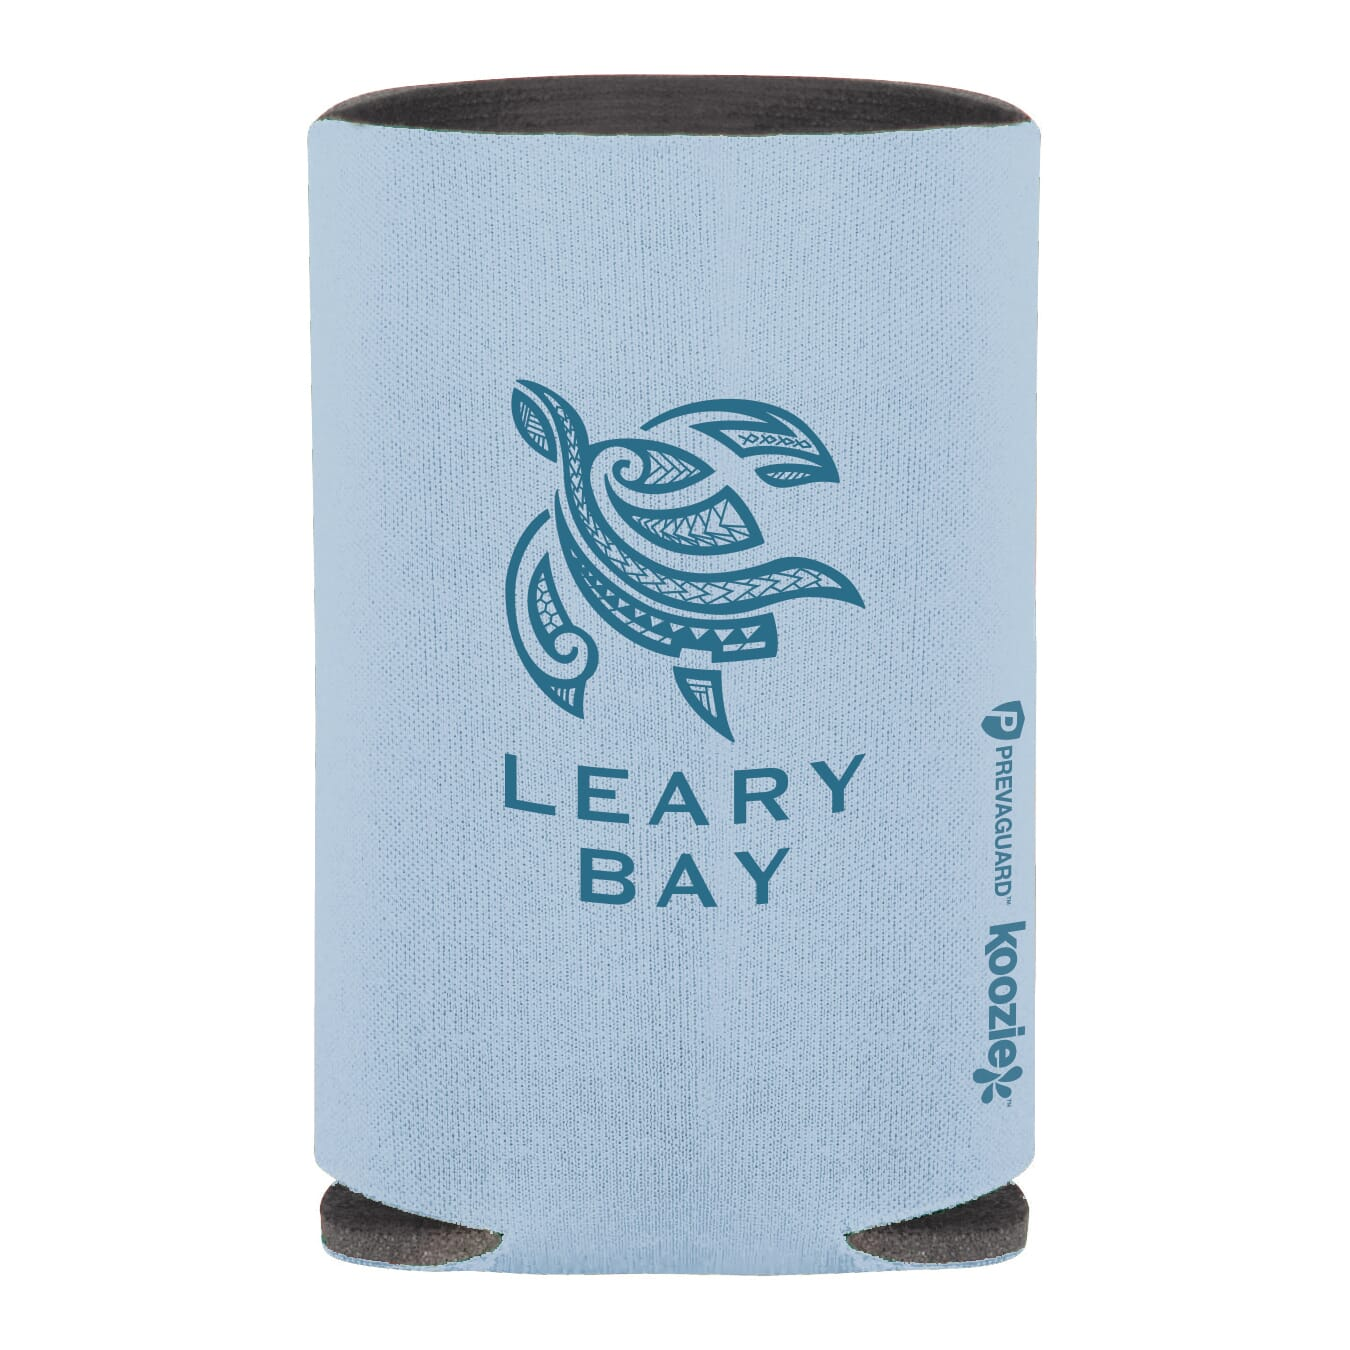 Light blue koozie can kooler